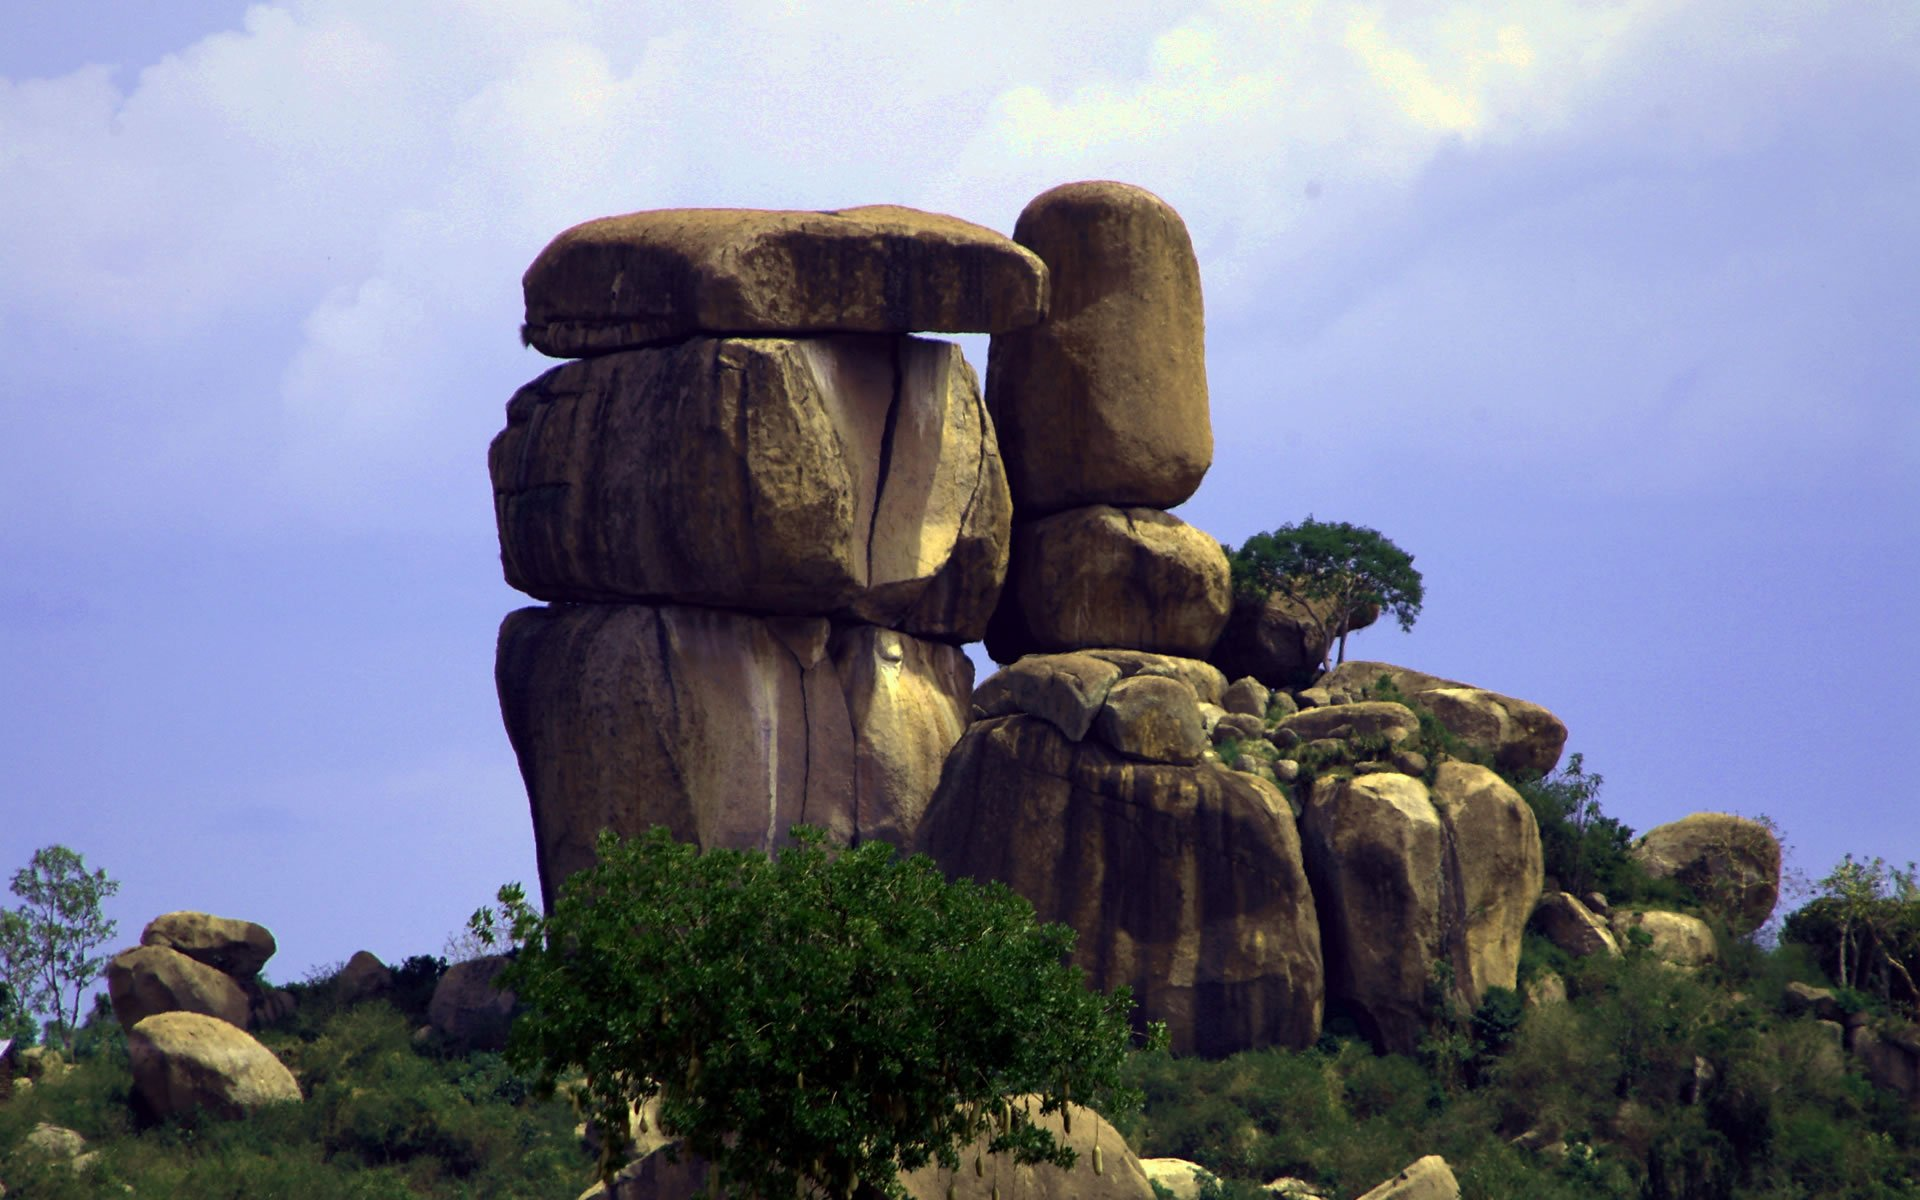 Kit Mikayi, are massive towers of boulders piled together into gravity-defying columns dipped in mystery and legend.